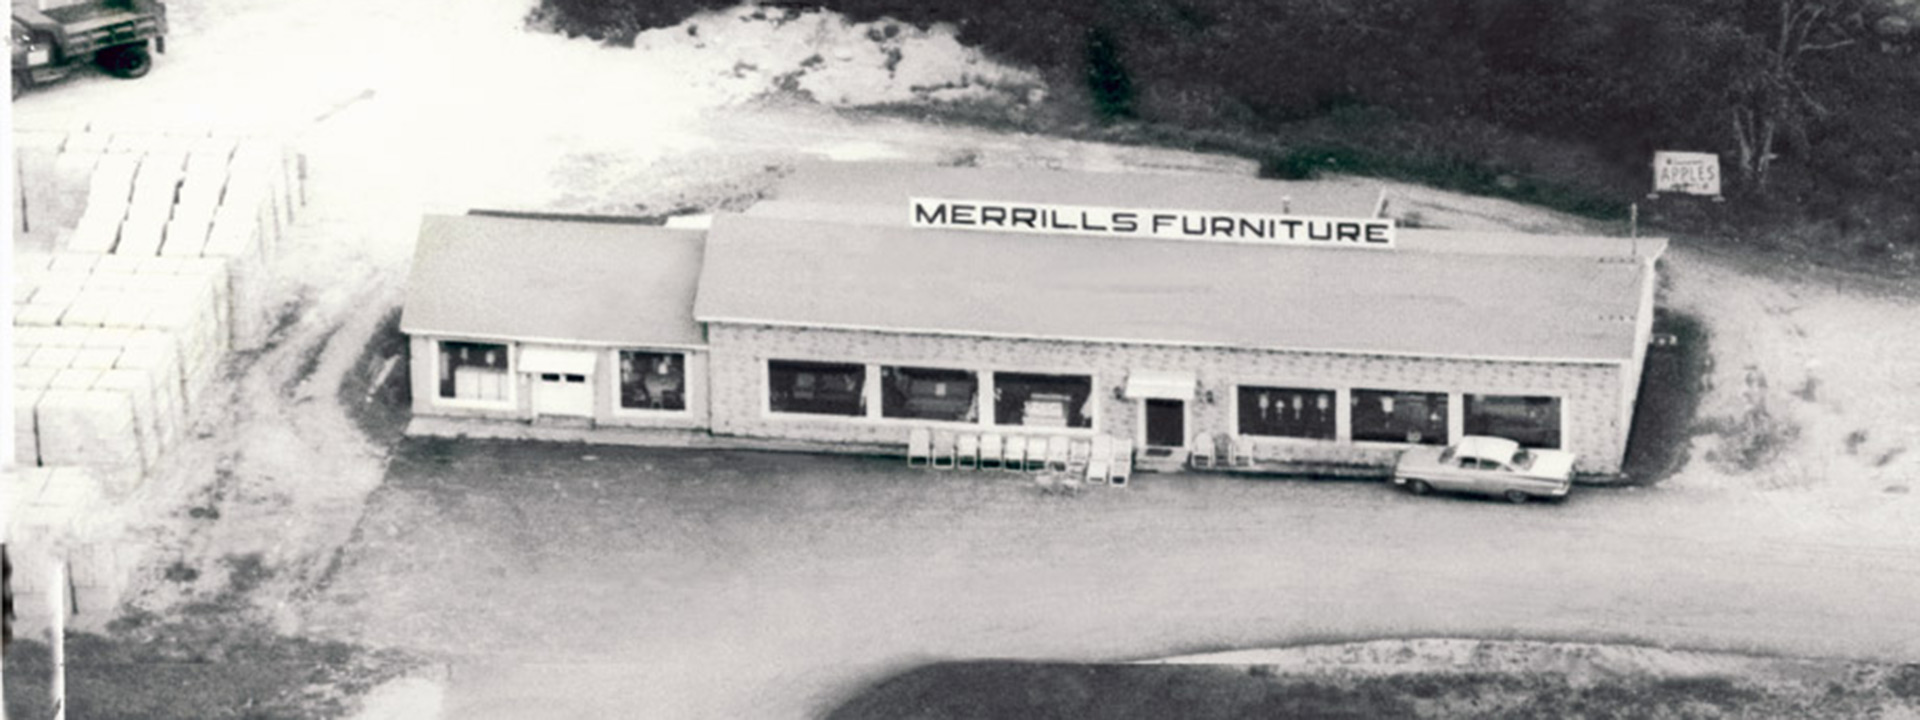 ... Dining Room Furniture, Beds And Mattresses, Home Office, Entertainment  Centers, Leather Furniture And Flooring At Merrill Furniture In Ellsworth,  Maine.